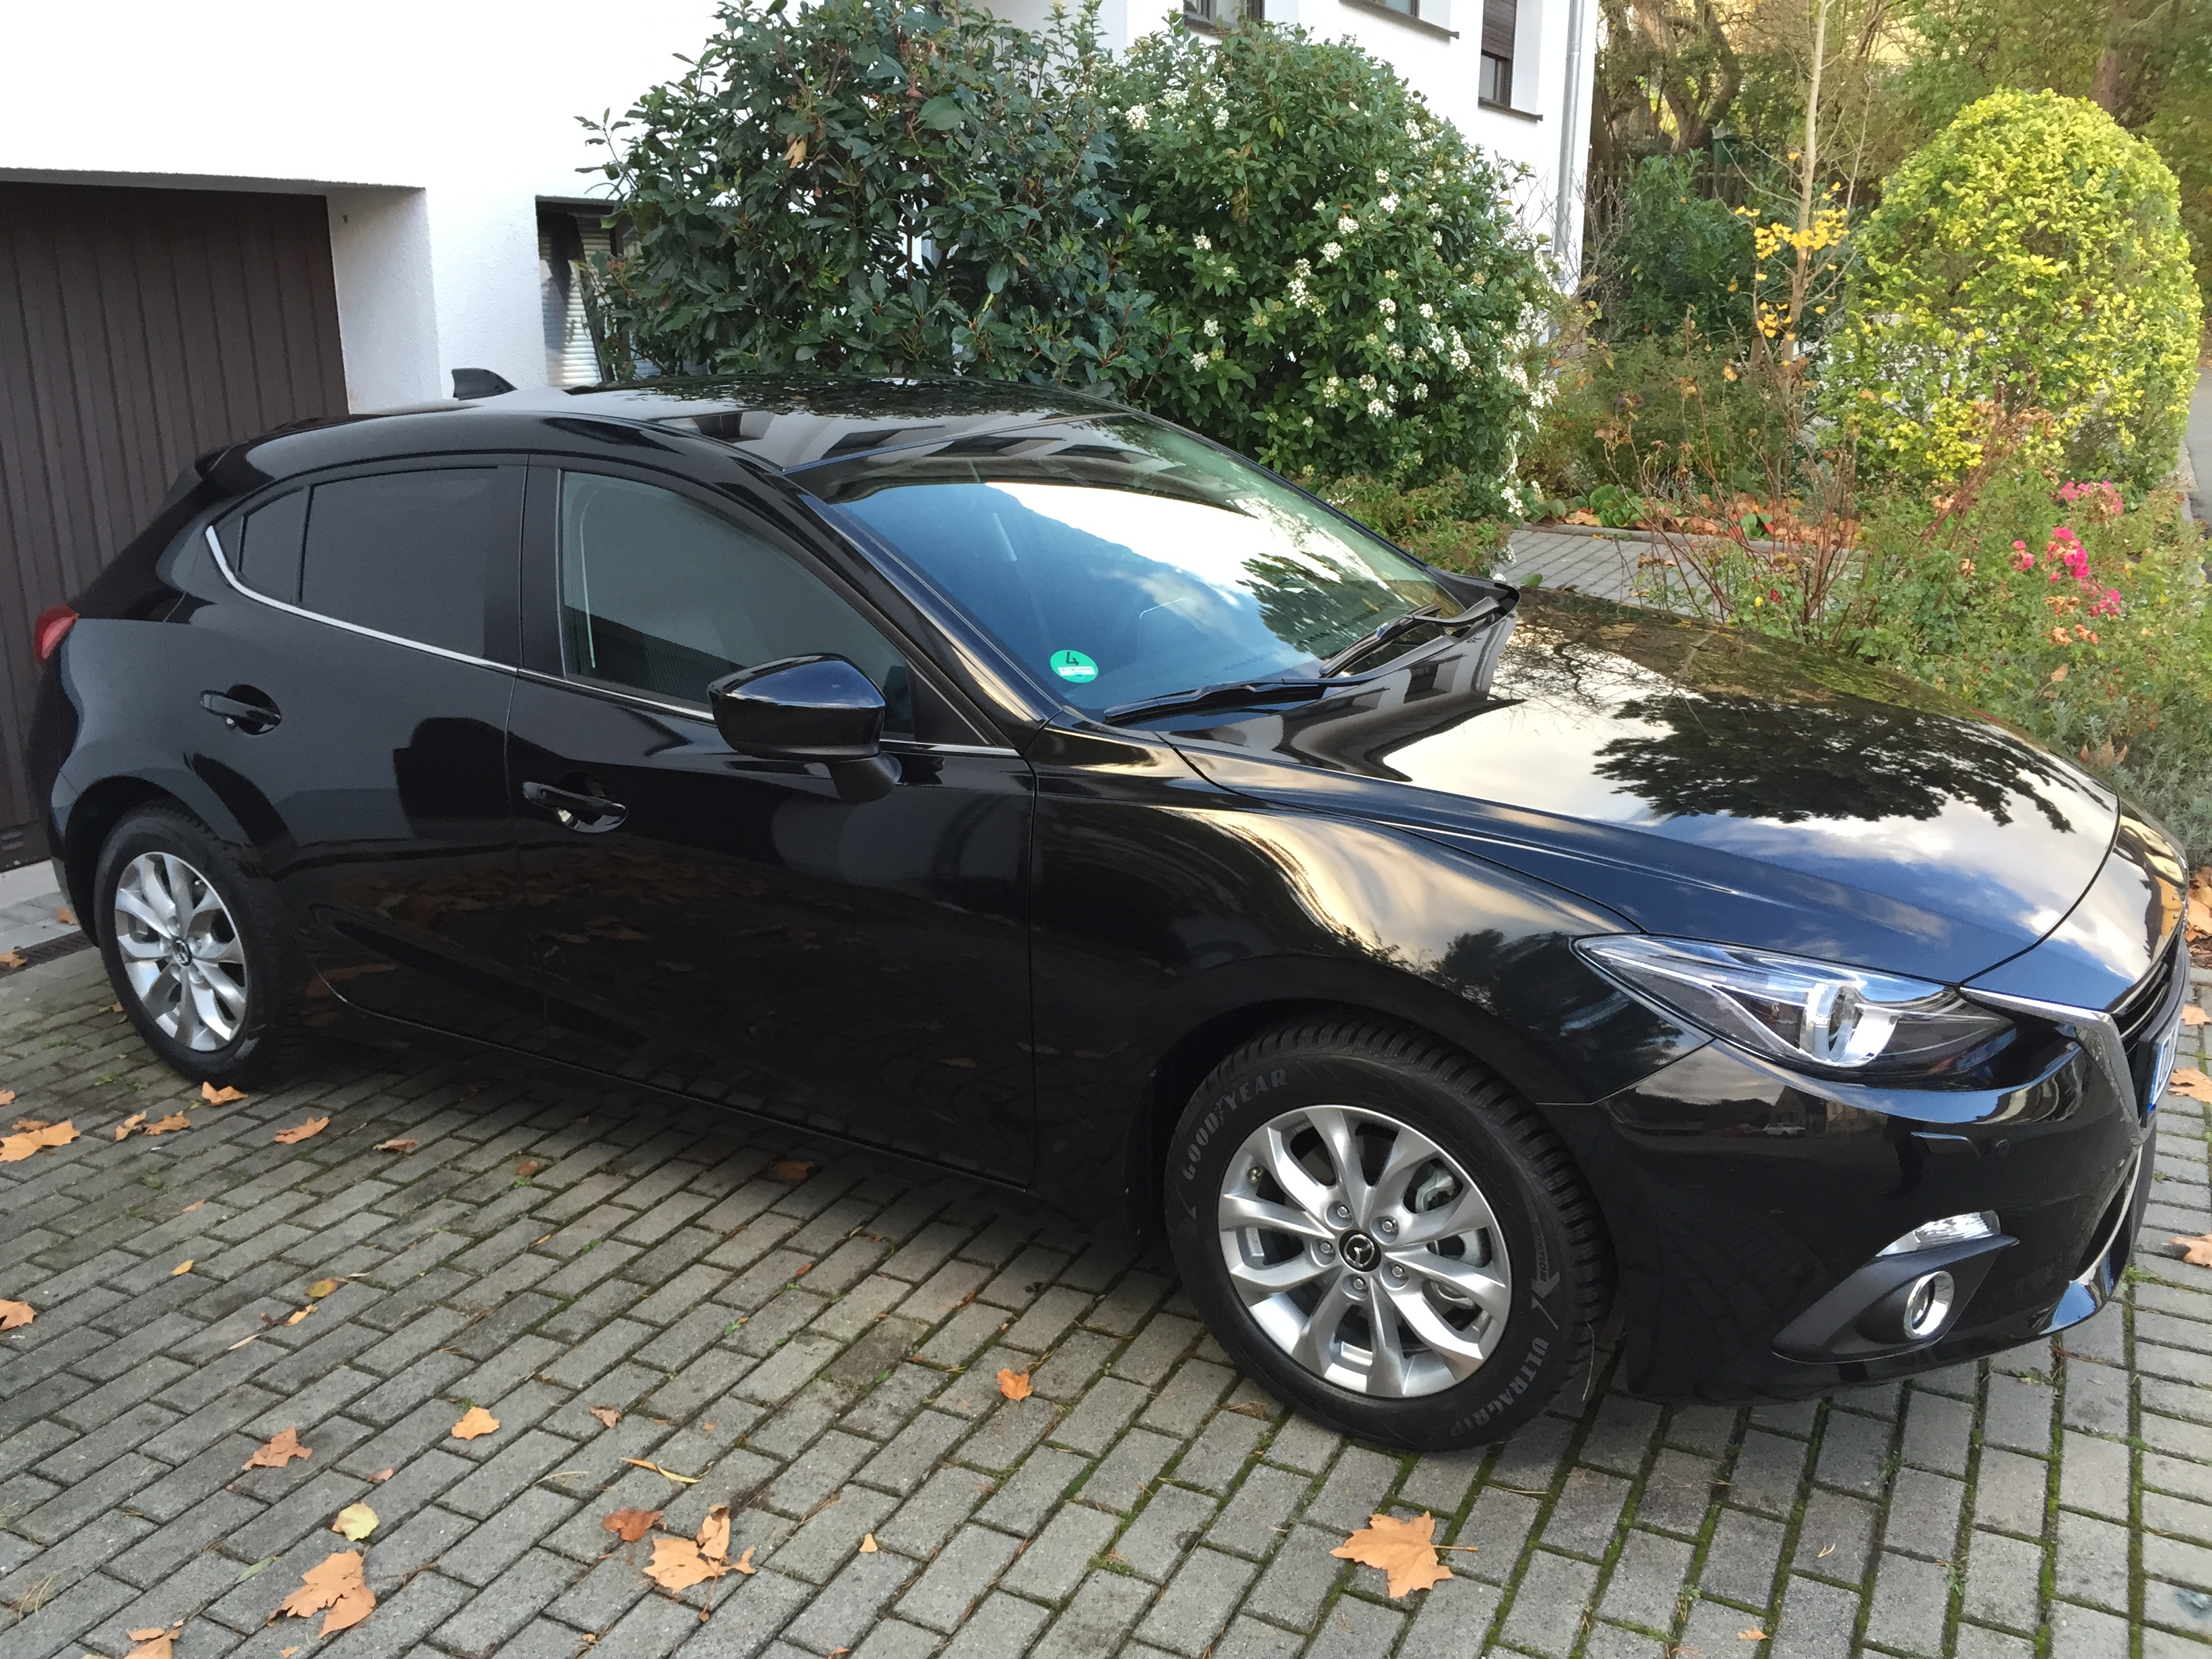 mazda 3 bm sports line g120 schwarz metallic 16 mazda winterfelge design 62 goodyear ultra. Black Bedroom Furniture Sets. Home Design Ideas